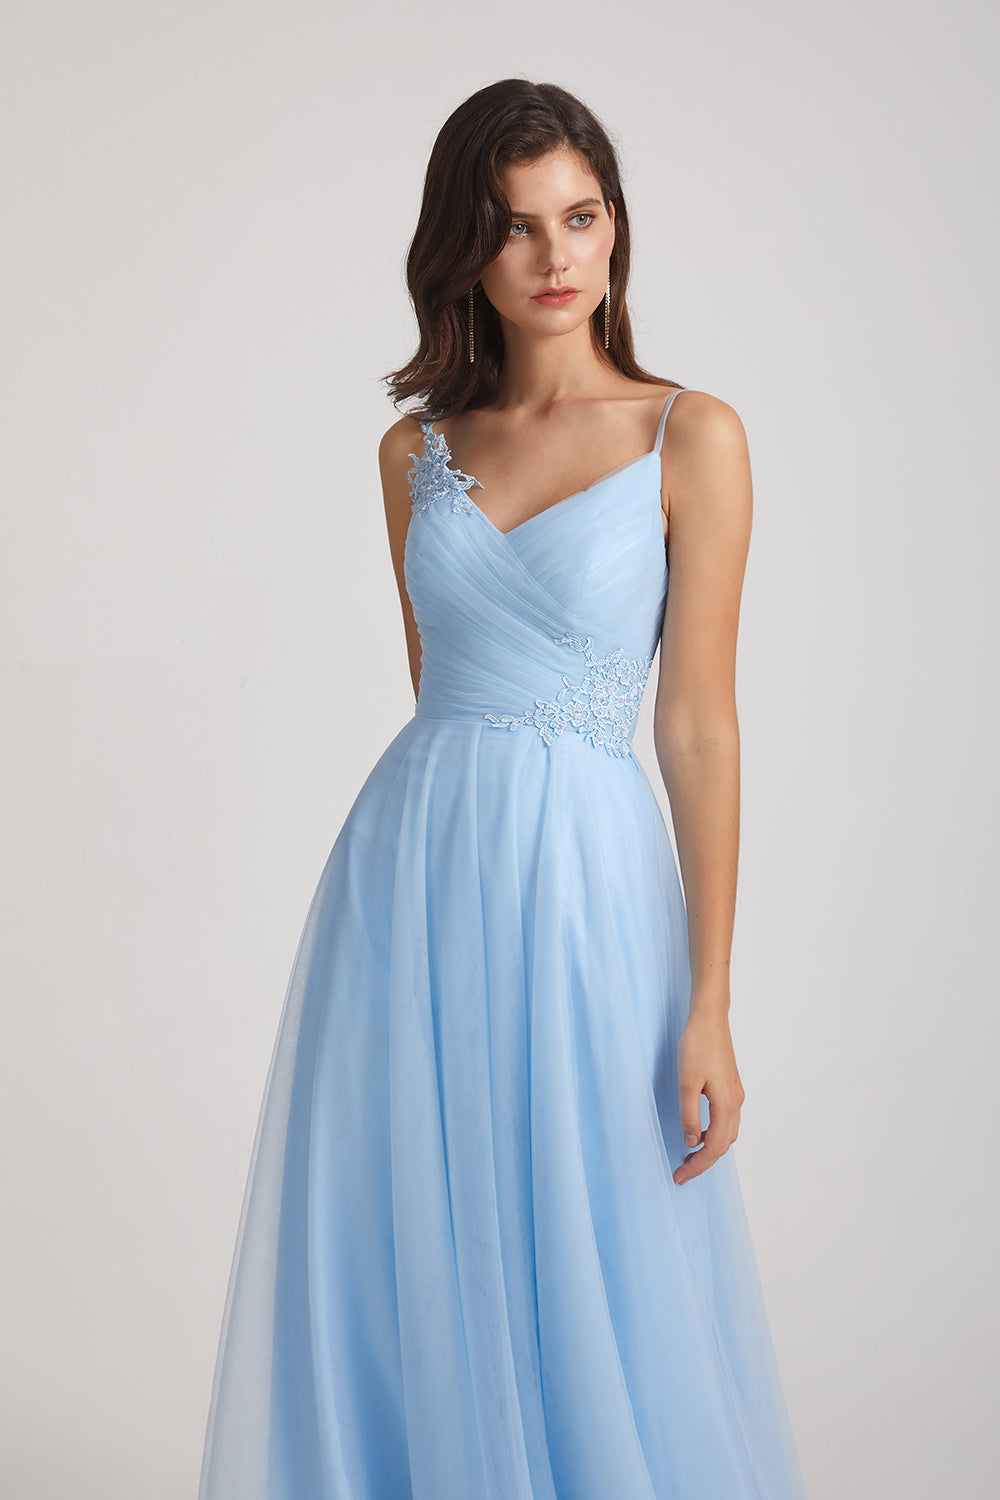 light blue Tulle Bridesmaid Dresses